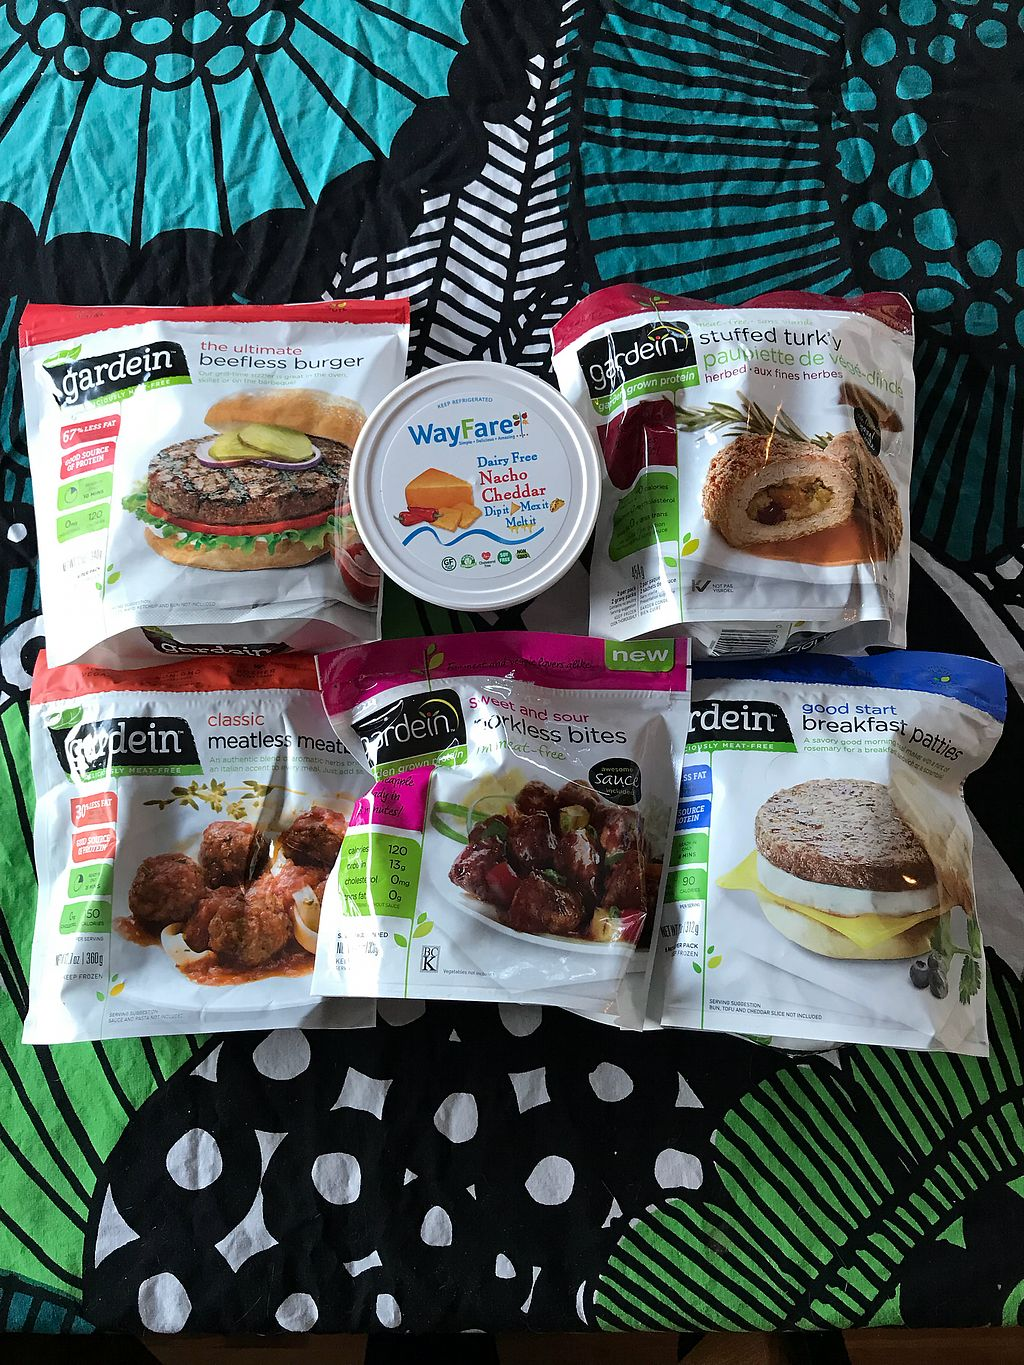 """Photo of ABC Christian Store  by <a href=""""/members/profile/vegetariangirl"""">vegetariangirl</a> <br/>Gardein and wayfare <br/> March 9, 2018  - <a href='/contact/abuse/image/113721/368495'>Report</a>"""